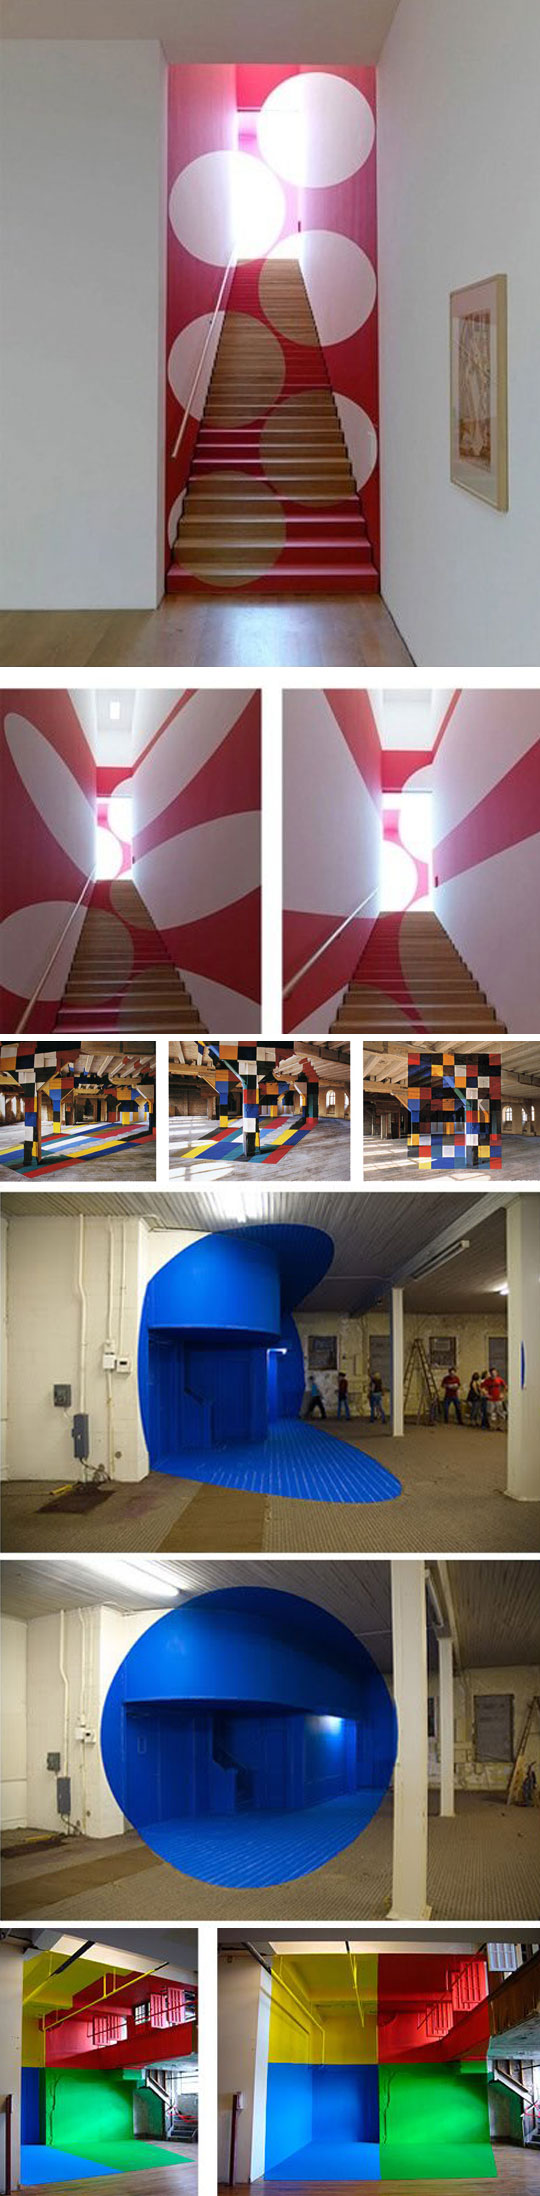 cool-colors-art-angle-stairs-design